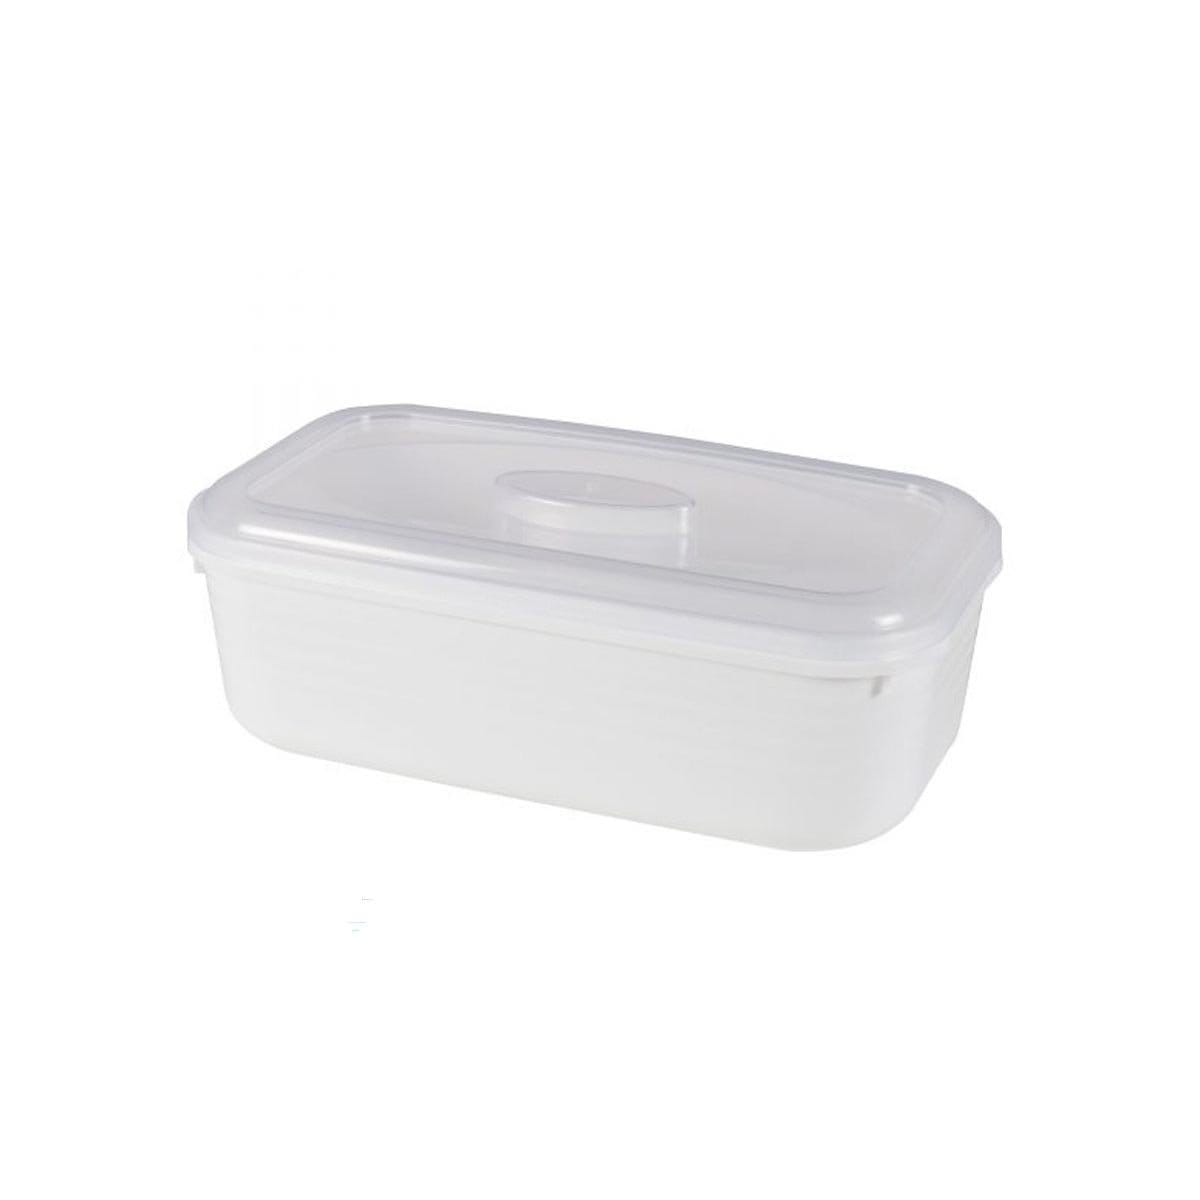 FFC130-1 Felton Food Container 3.3L